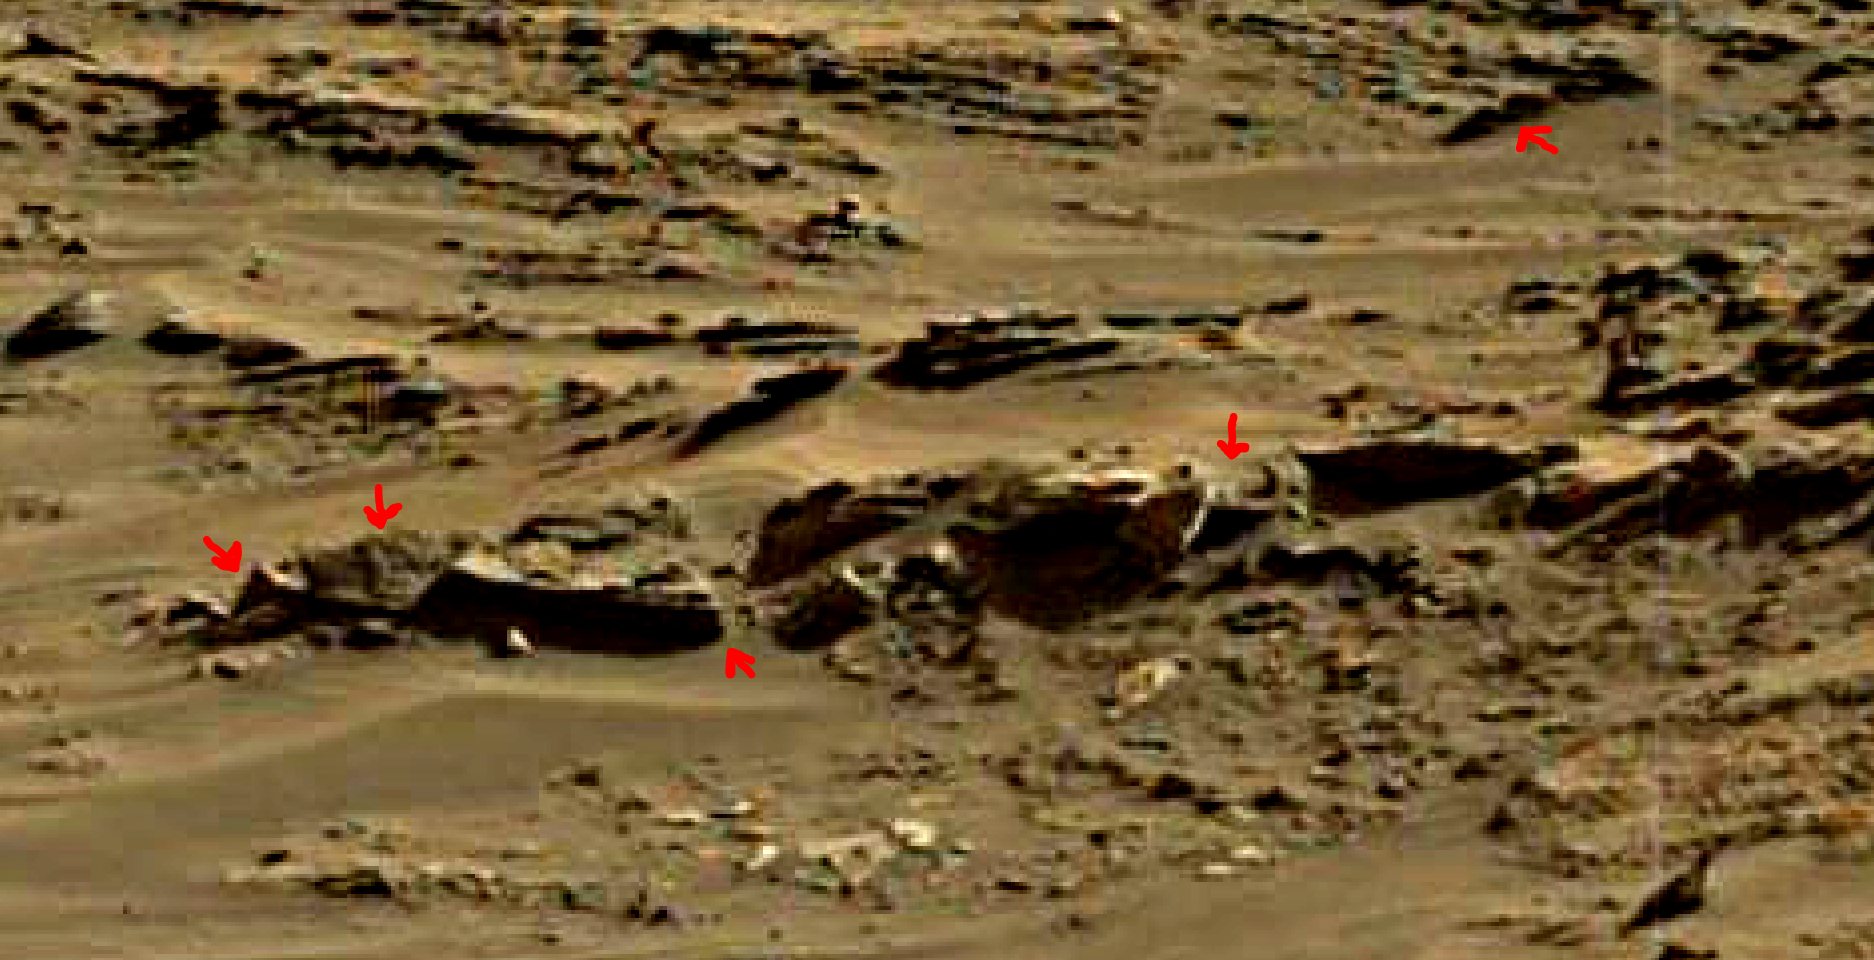 mars sol 1376 anomaly-artifacts 7a was life on mars